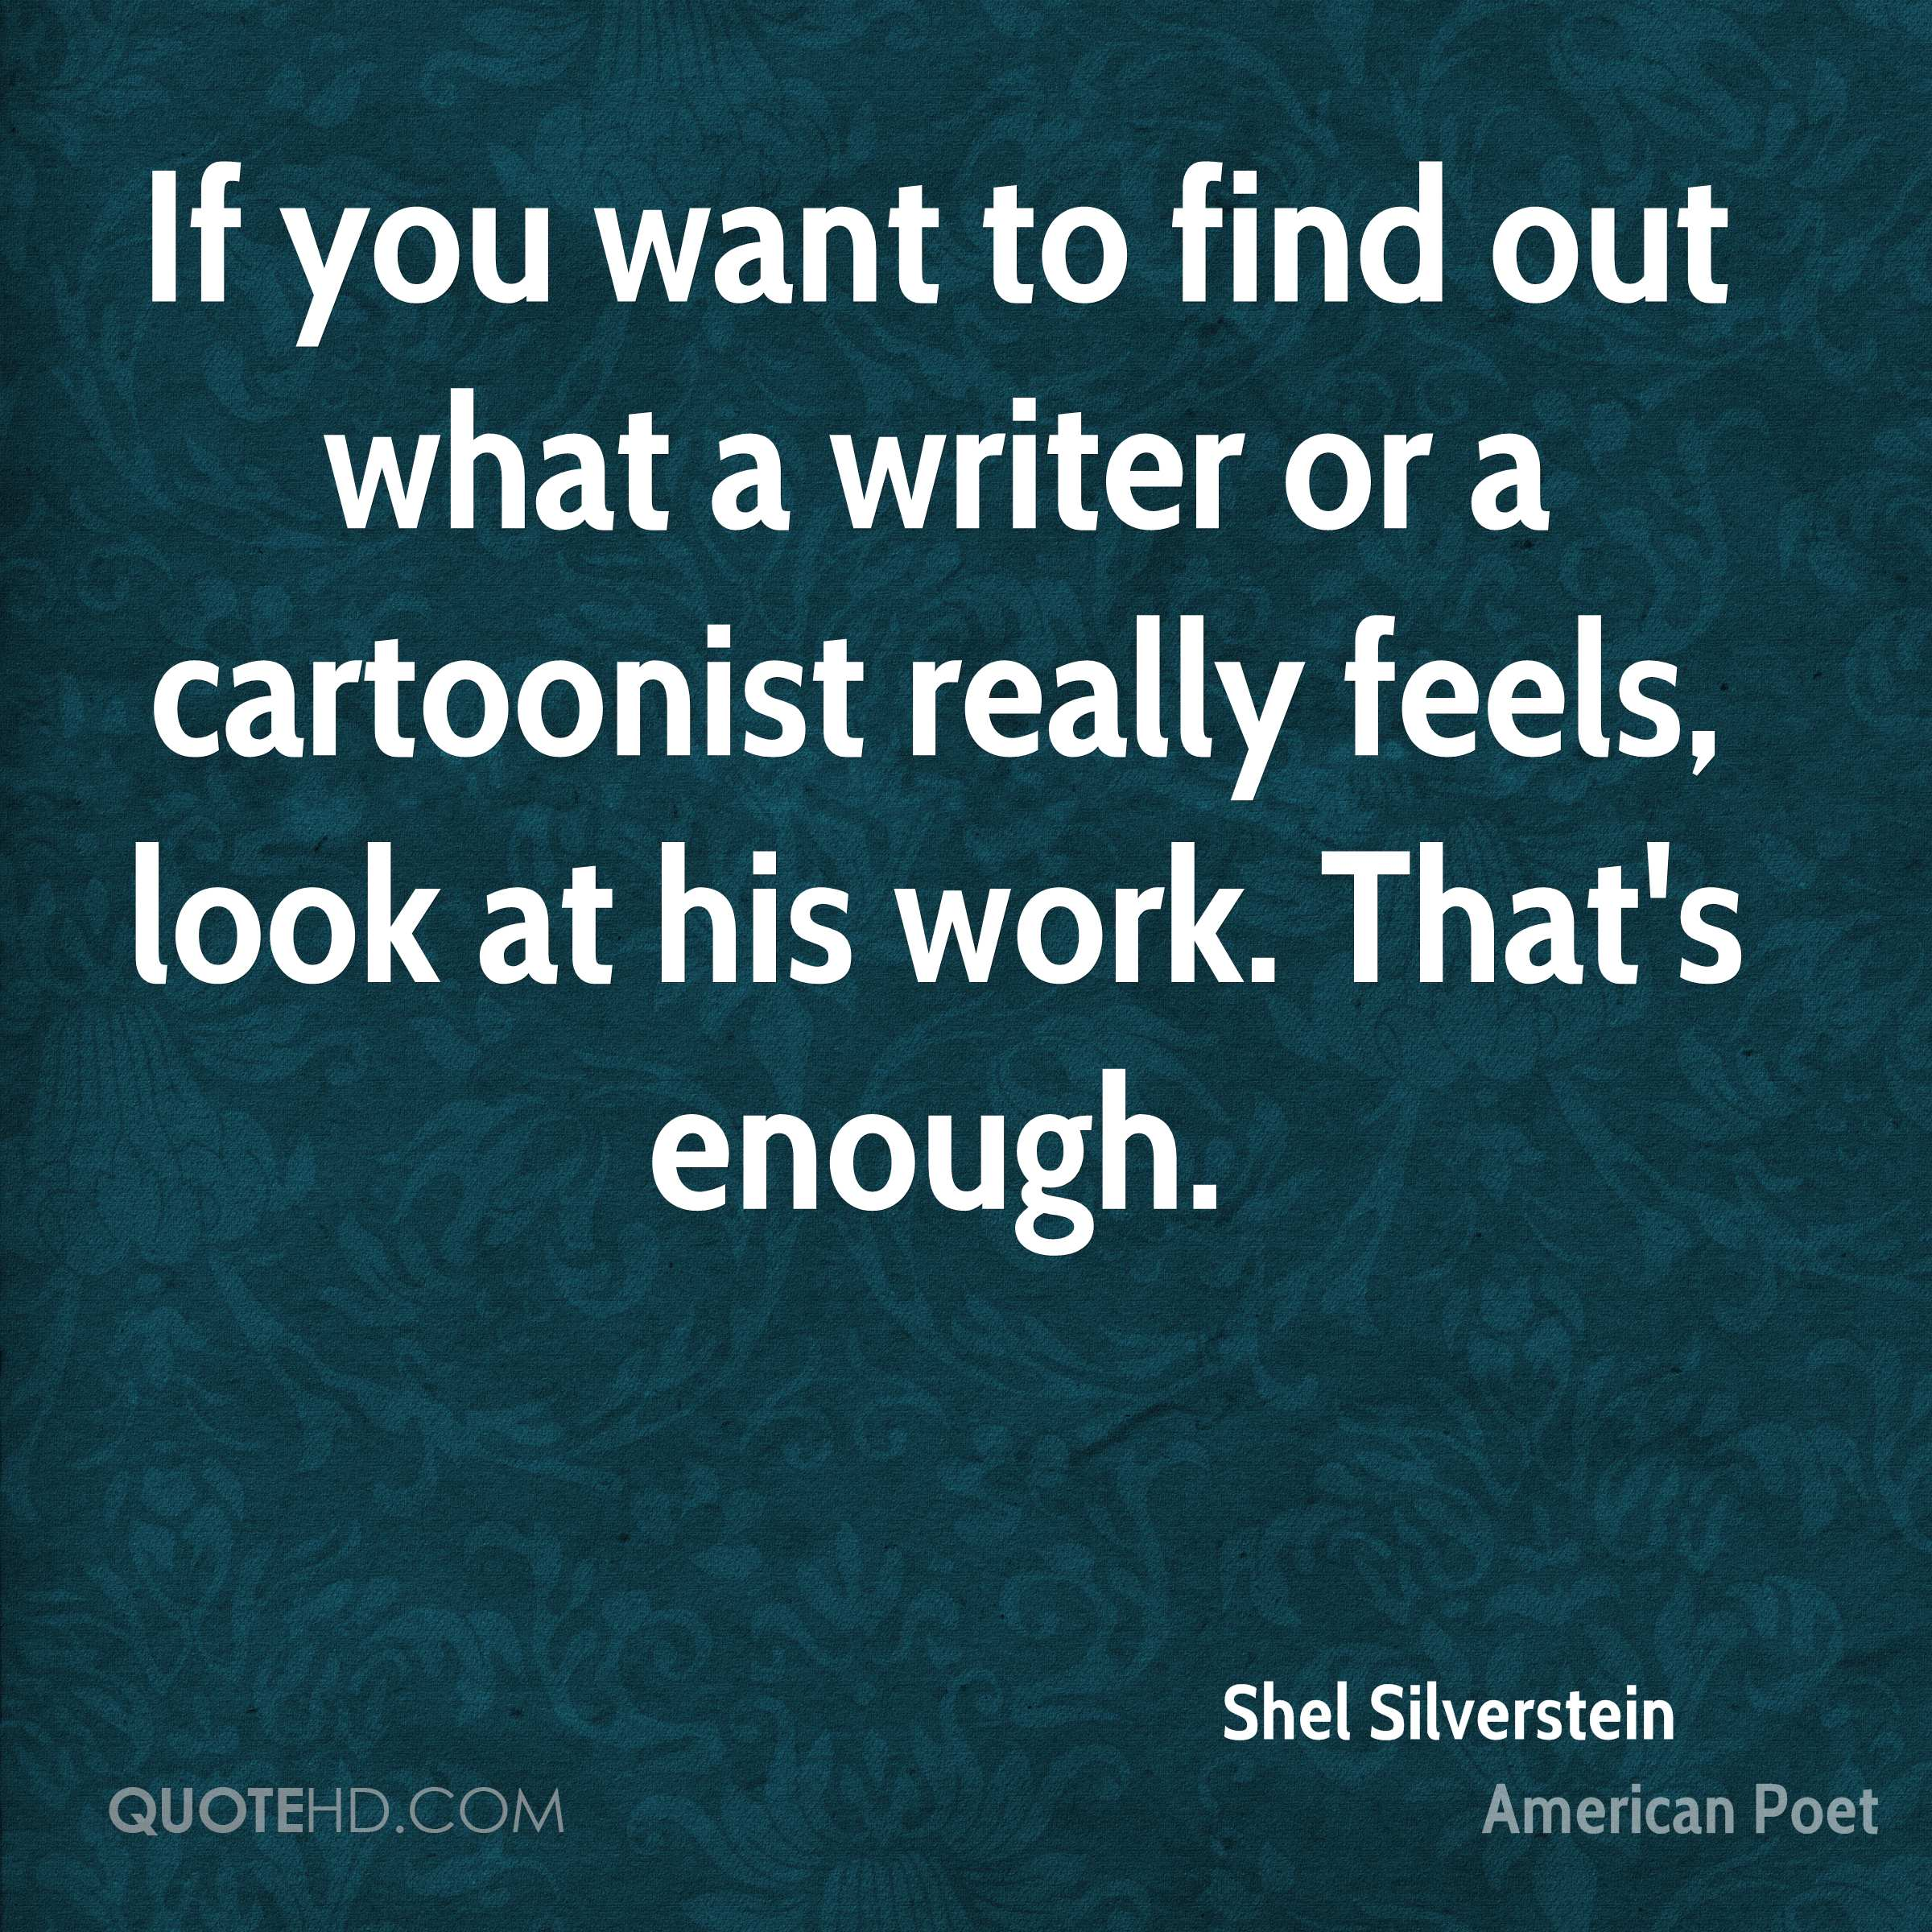 If you want to find out what a writer or a cartoonist really feels, look at his work. That's enough.